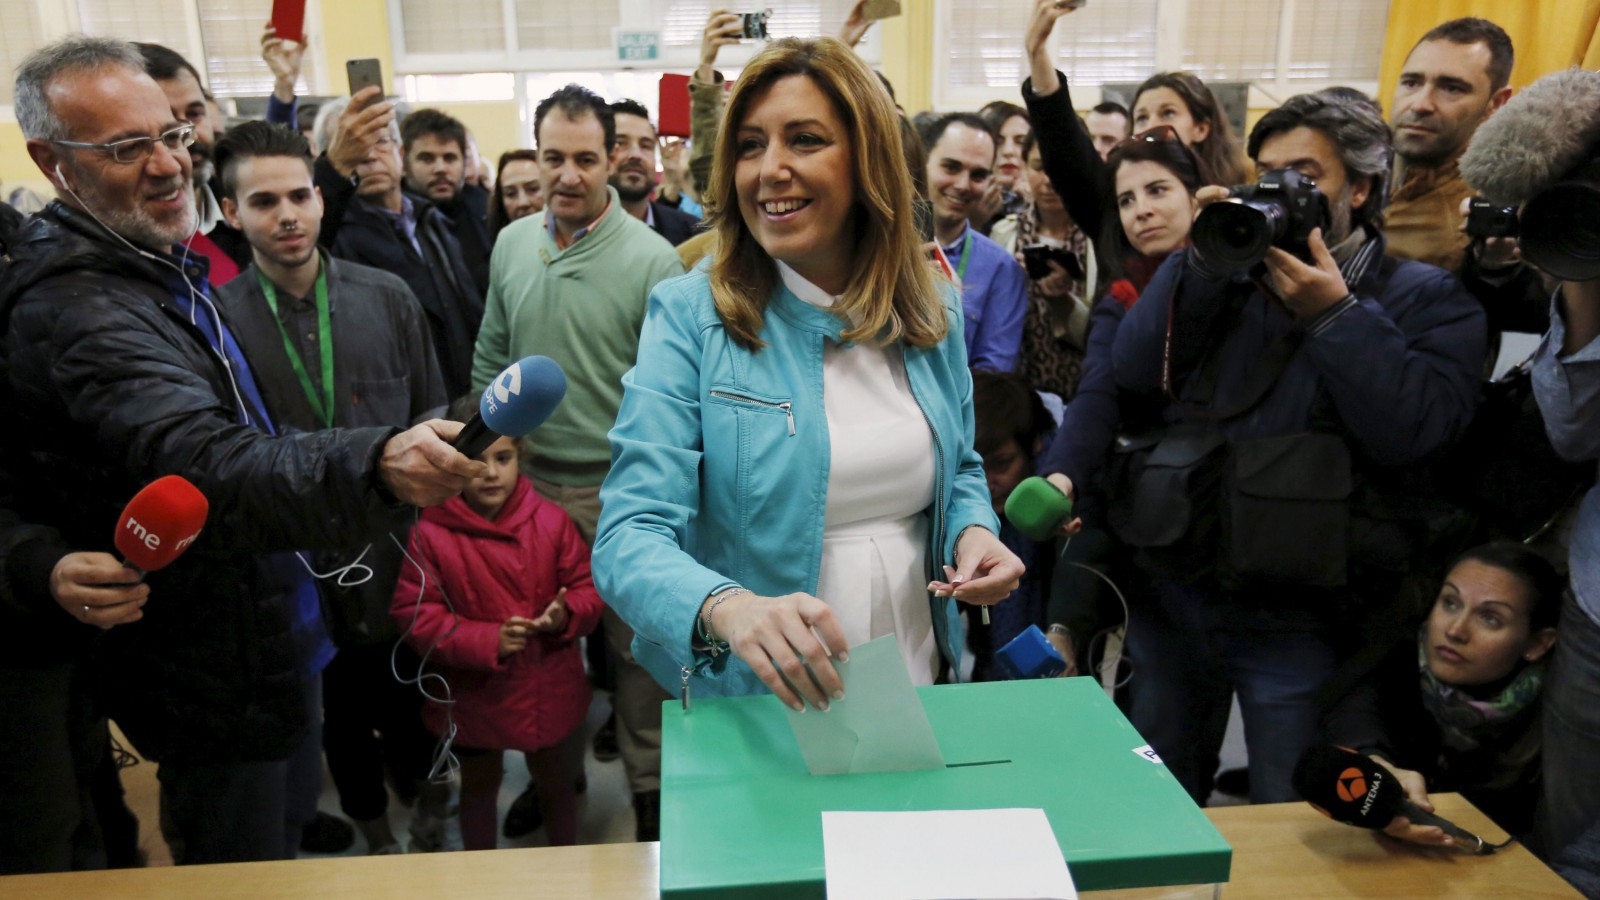 Andalusia's regional government president and Socialist candidate Susana Diaz casts her vote for the Andalusian regional elections at a polling station in the Andalusian capital of Seville March 22, 2015. An election in Spain's Andalusia region on Sunday is expected to provide the first real test for two new parties after a profound economic and political crisis has exposed the weaknesses of the country's two-party system. With a general election expected before the end of the year, regional and local elections in May and a vote in independence-minded Catalonia in September, Sunday's vote will provide the first hard evidence of political change as economic recovery gathers pace, leaving millions of jobless behind. REUTERS/Marcelo del Pozo     - RTR4UCTA